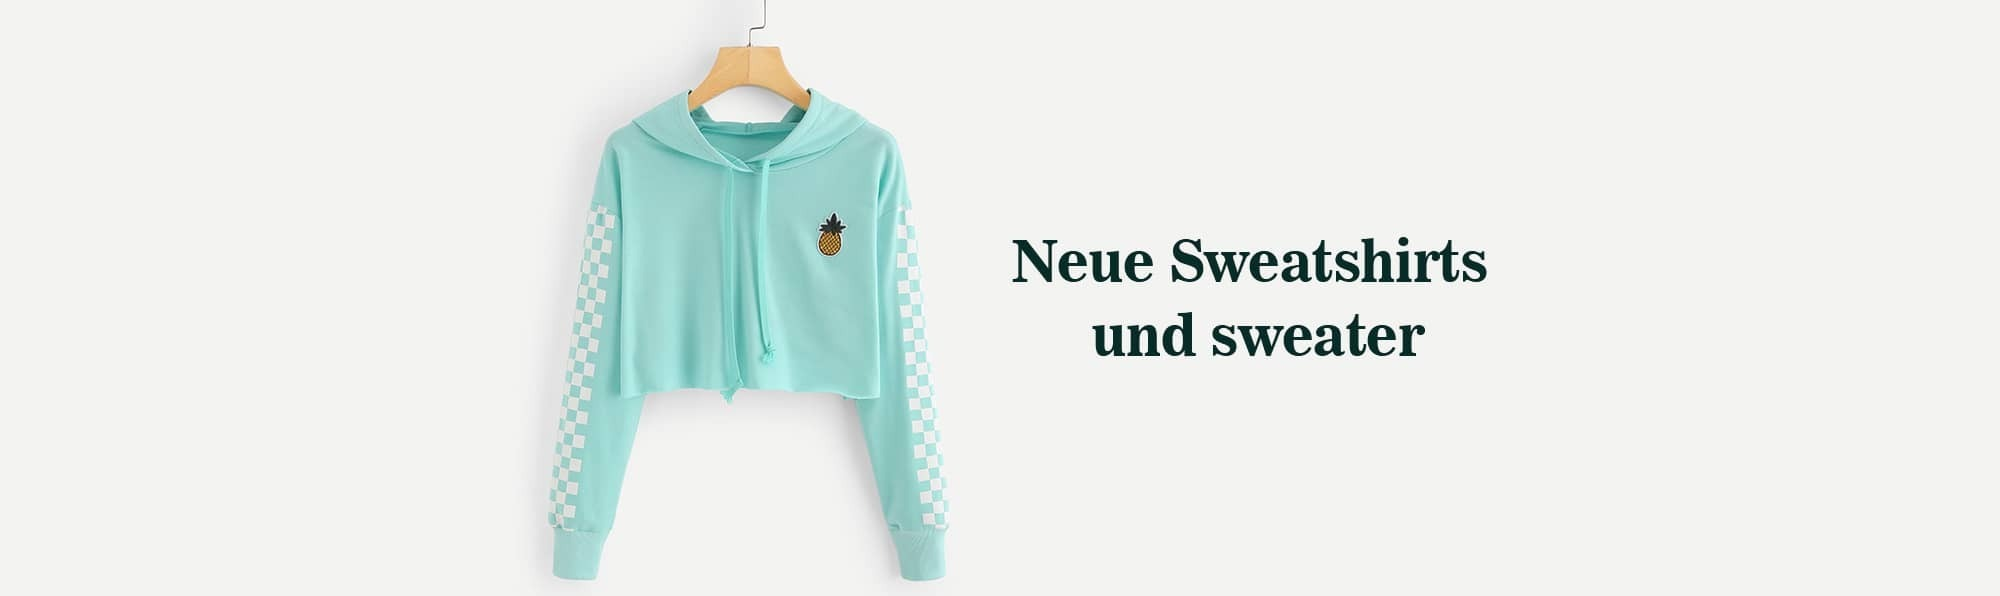 DE Sweatshirt&Sweater 20171218